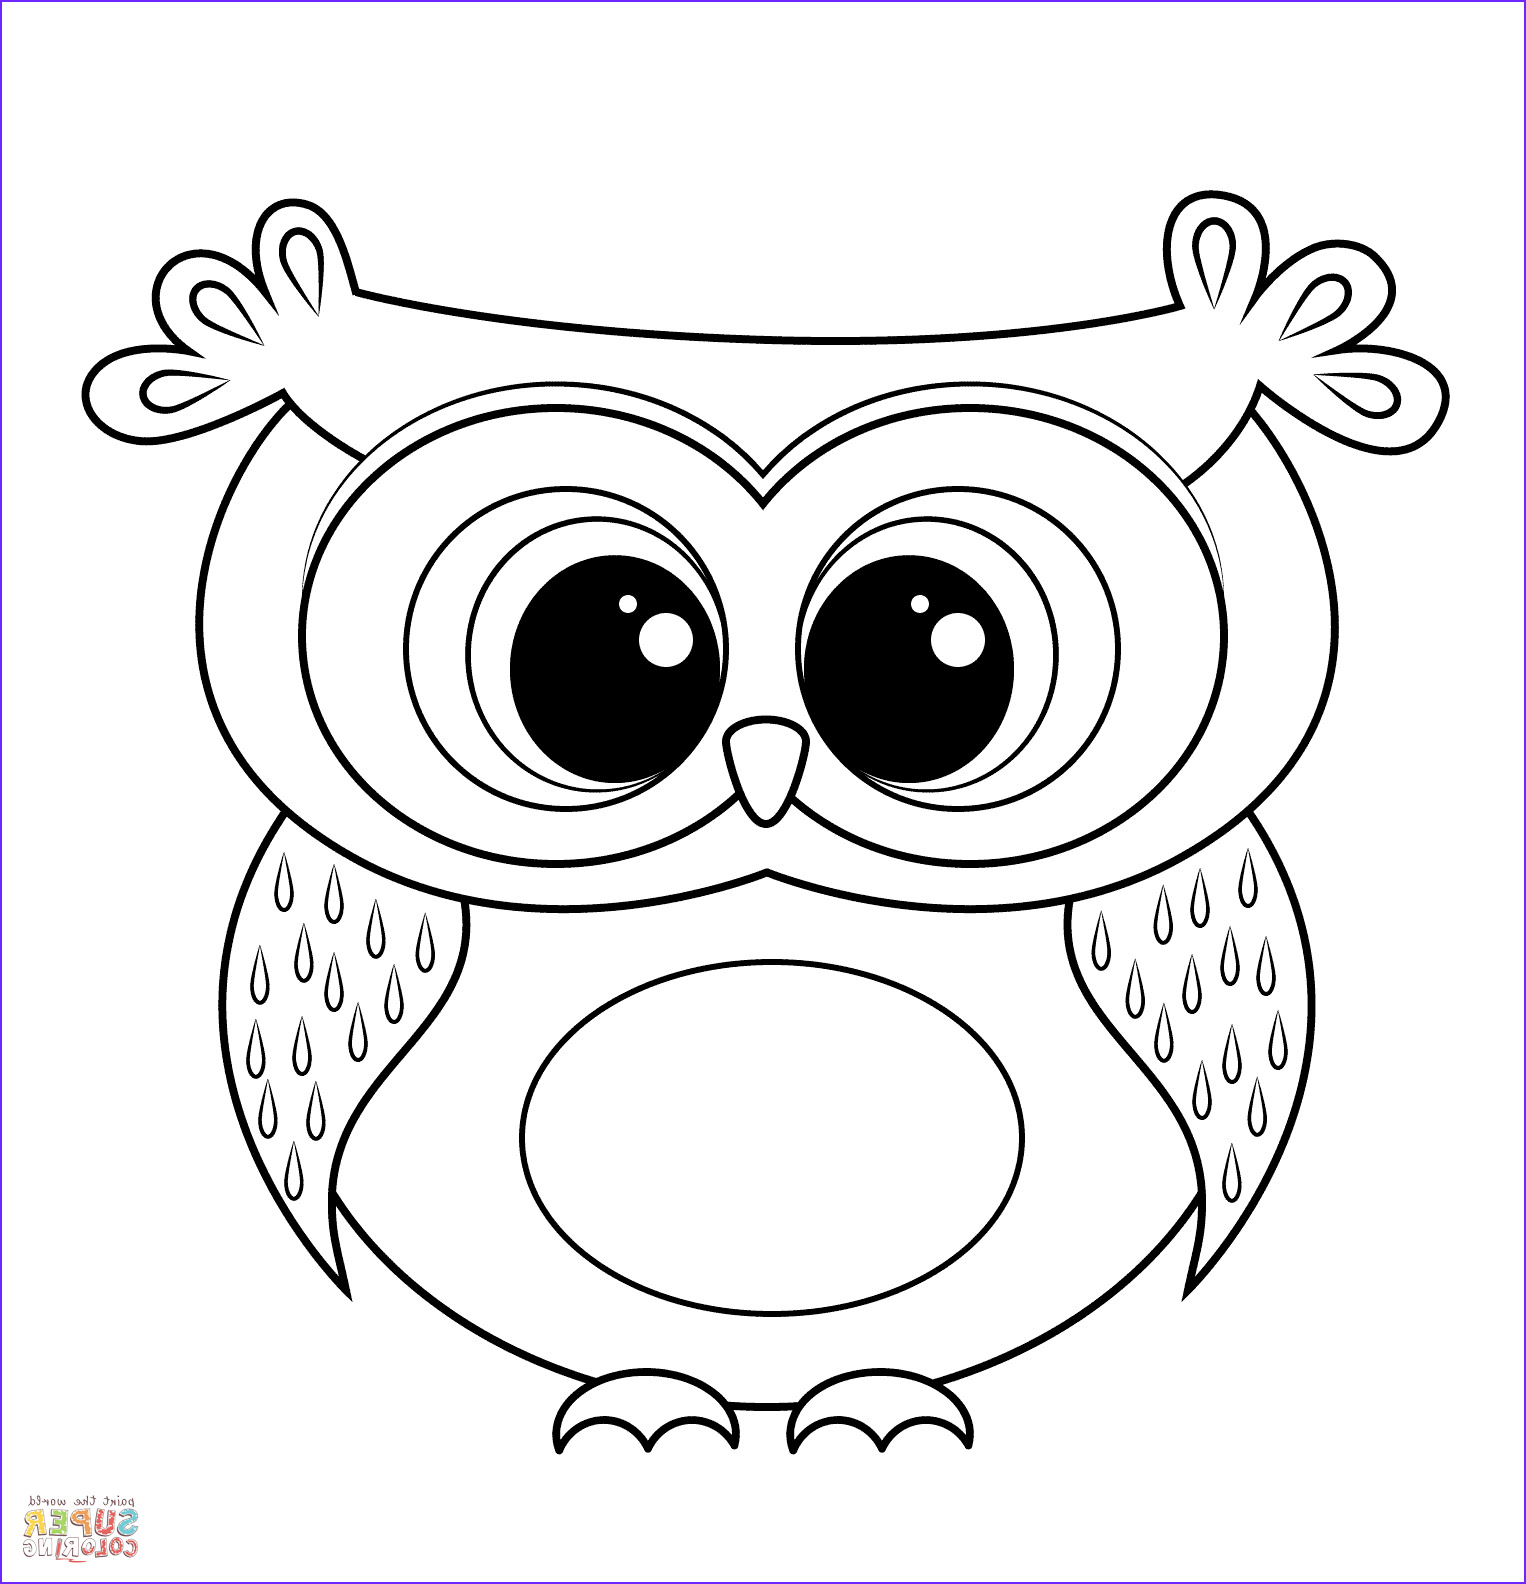 Coloring Book Owl Inspirational Image Cartoon Owl Coloring Page